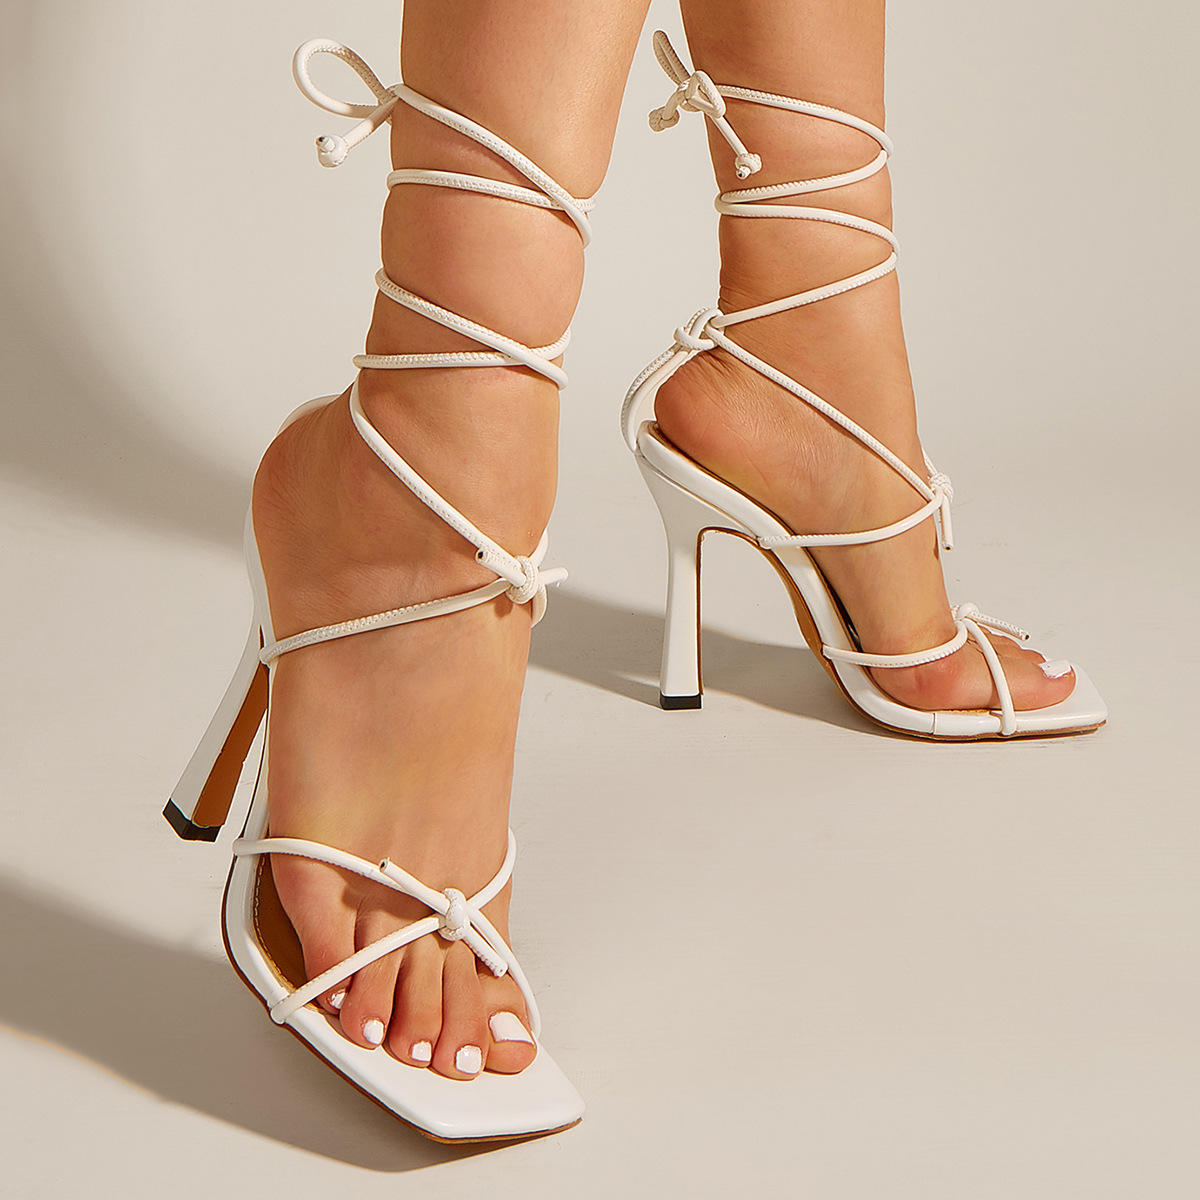 fashion square toe strappy high heel opentoe sandals NHSO367874